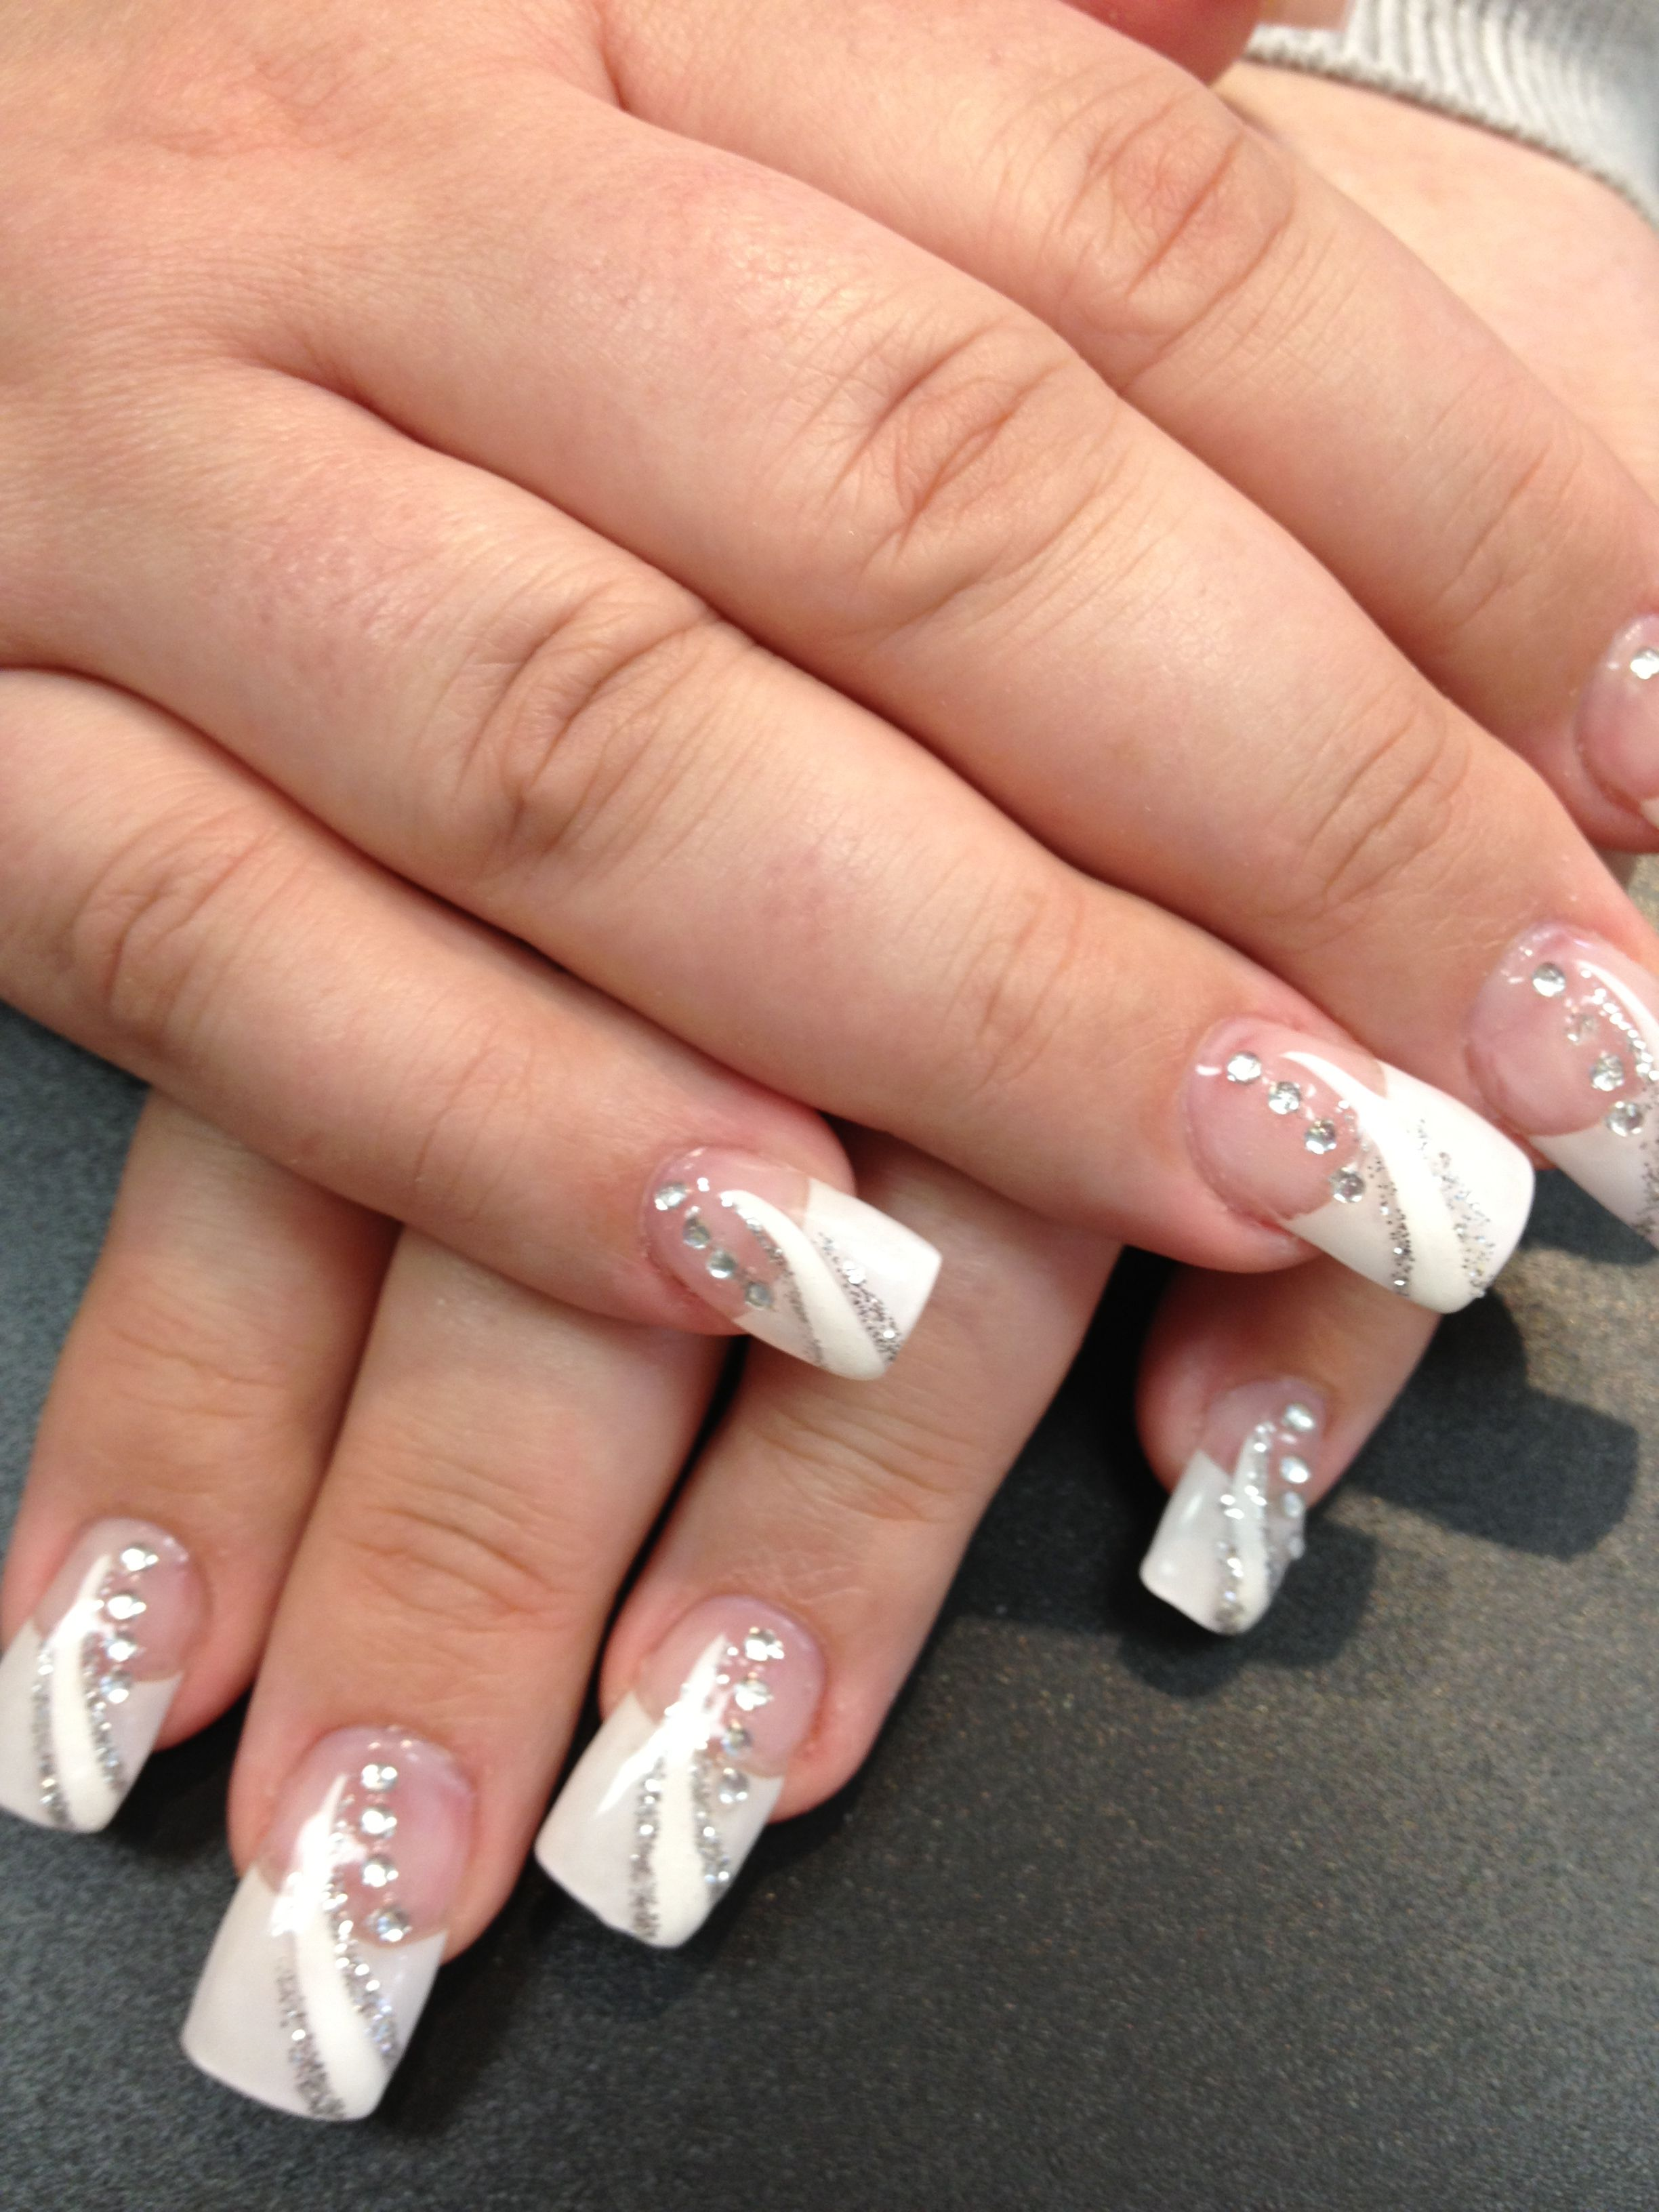 Solar nails French tips with white and silver design | Women\'s ...